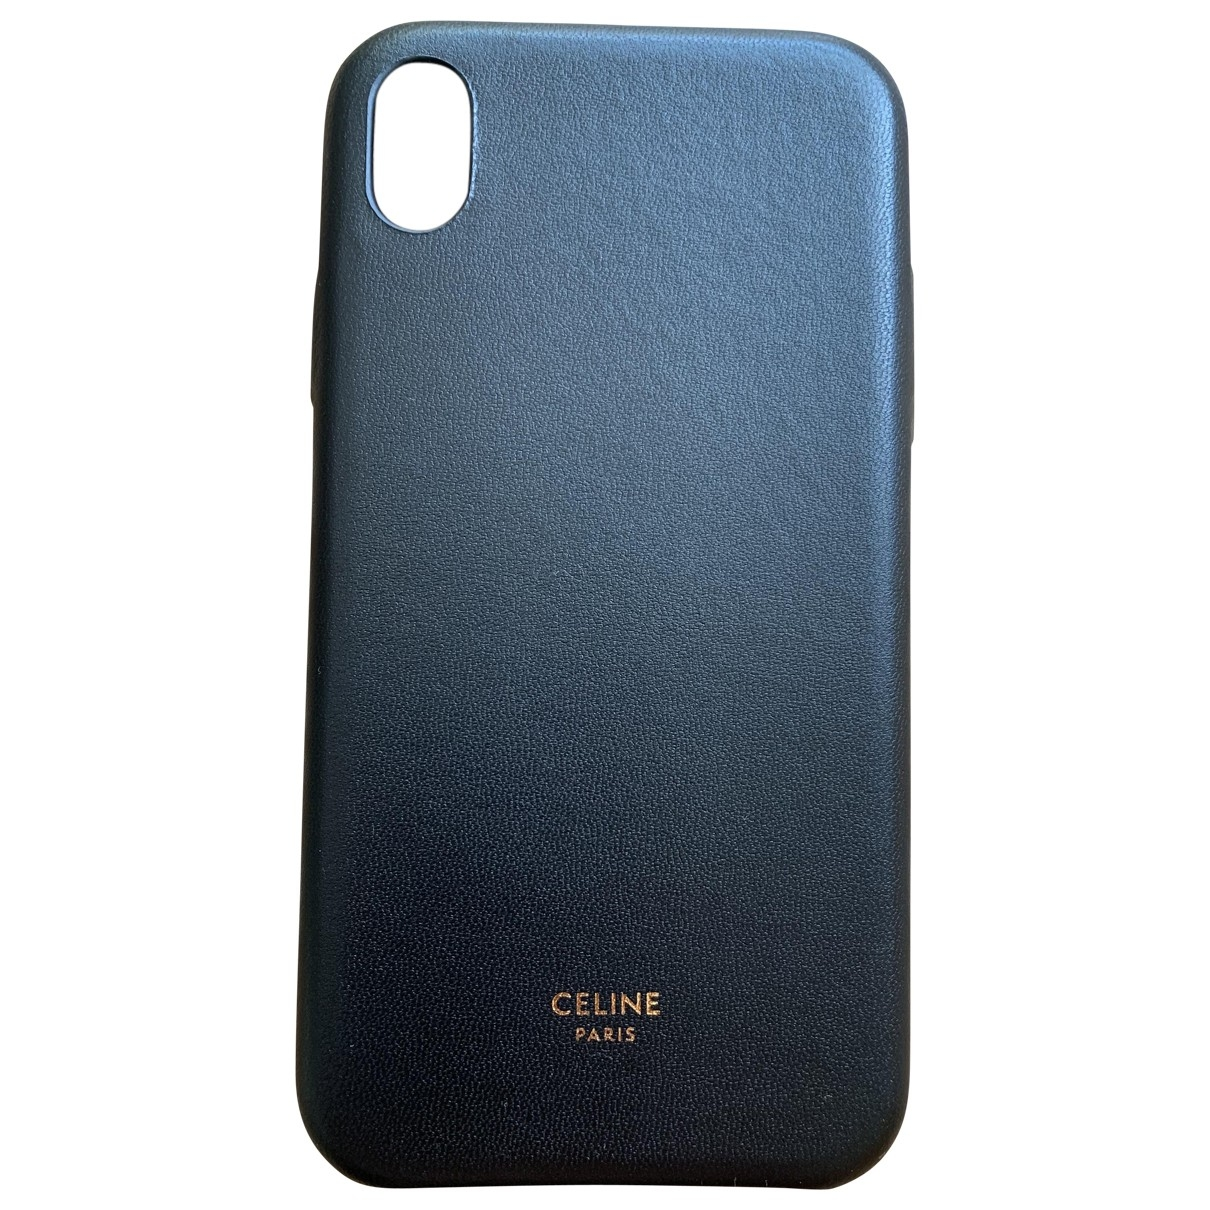 Funda iphone de Cuero Celine